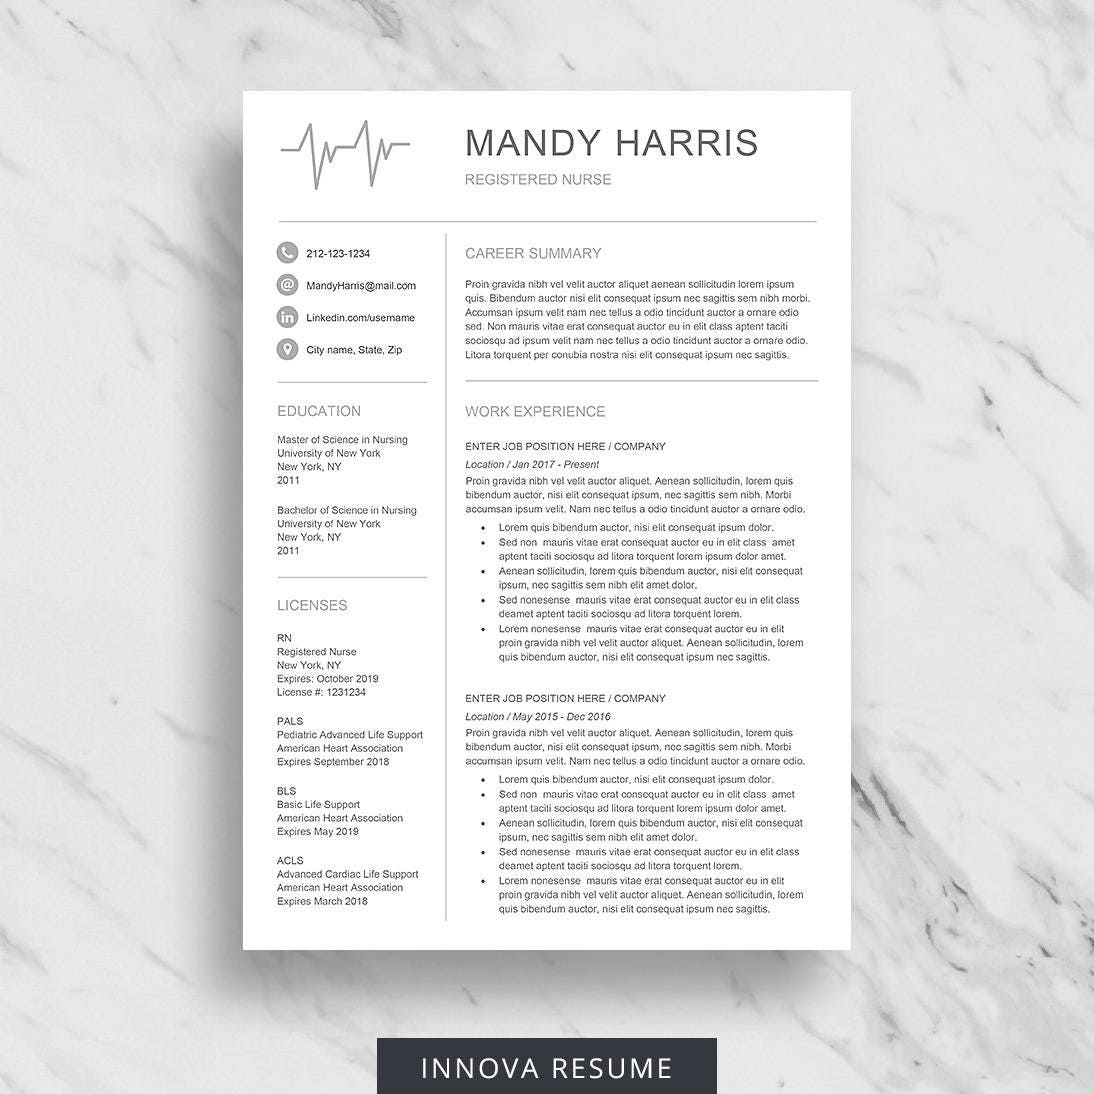 Nurse resume template for word medical resume download nurse cv nurse resume template for word medical resume download nurse cv template doctor resume yelopaper Choice Image